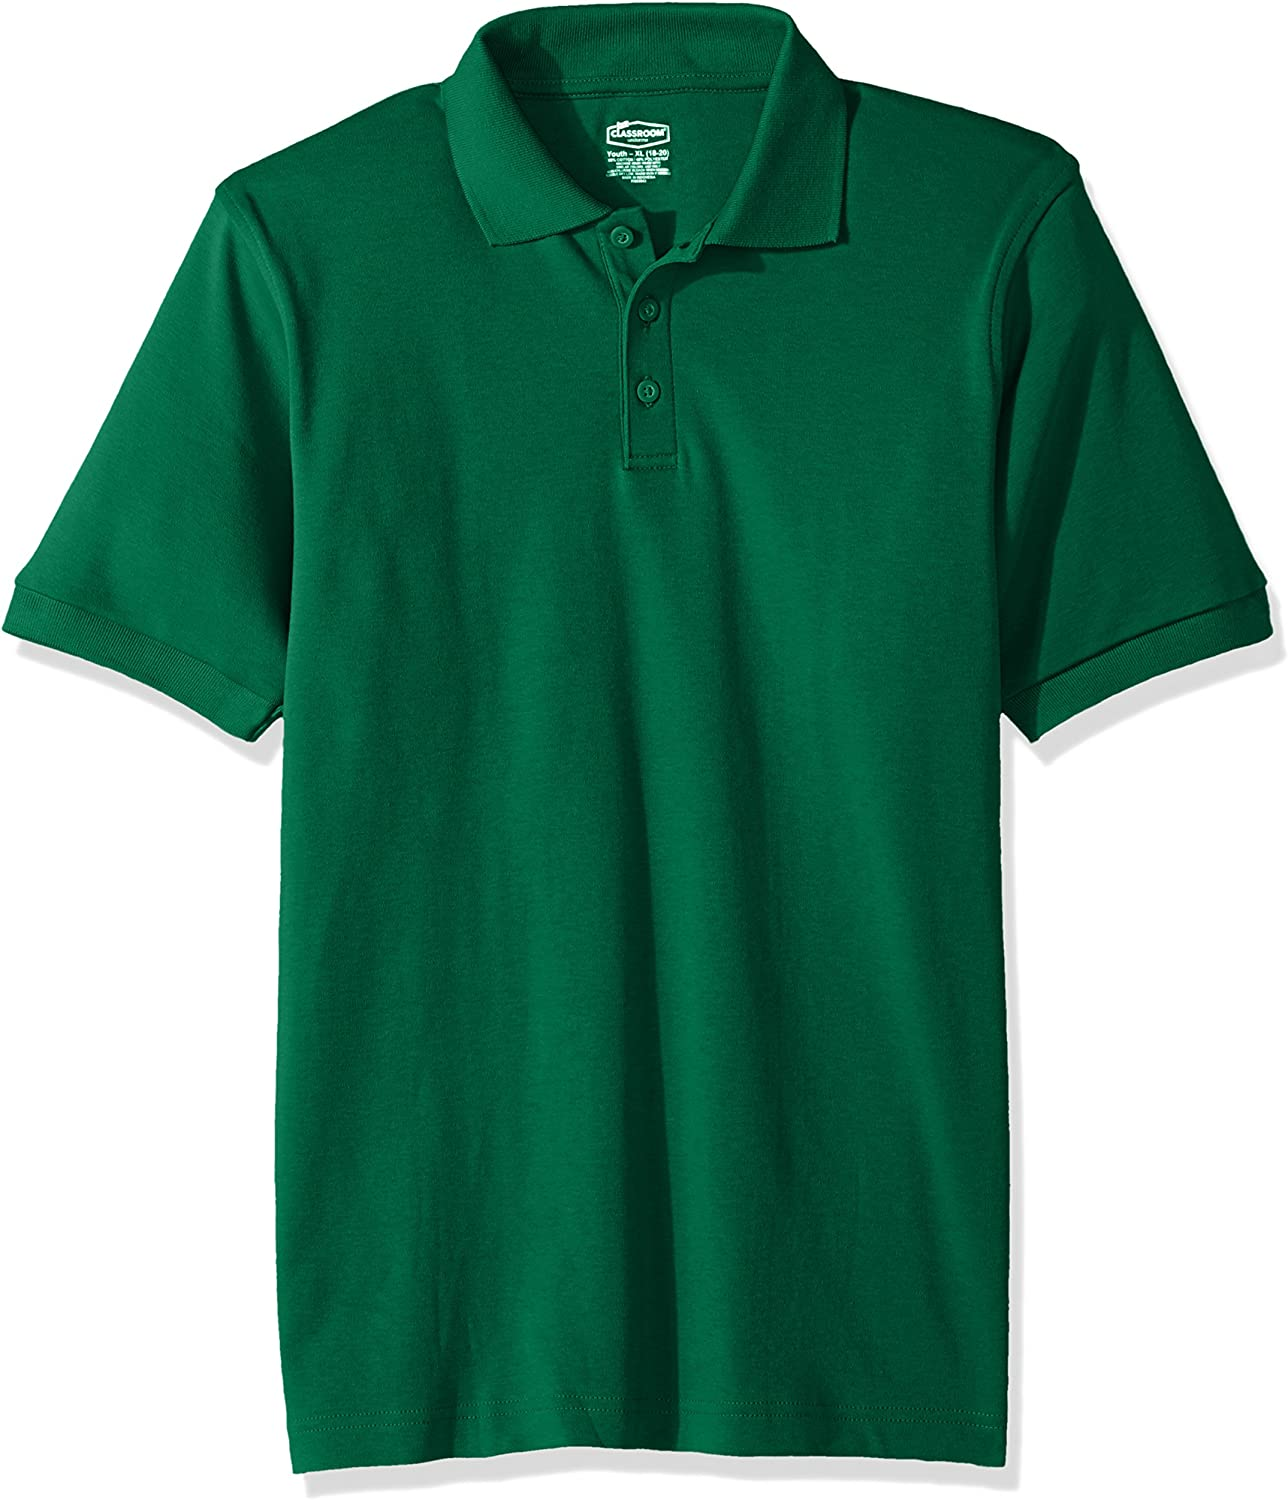 Classroom School Uniforms Kids Big Boys' Uniform Short Sleeve Interlock Polo